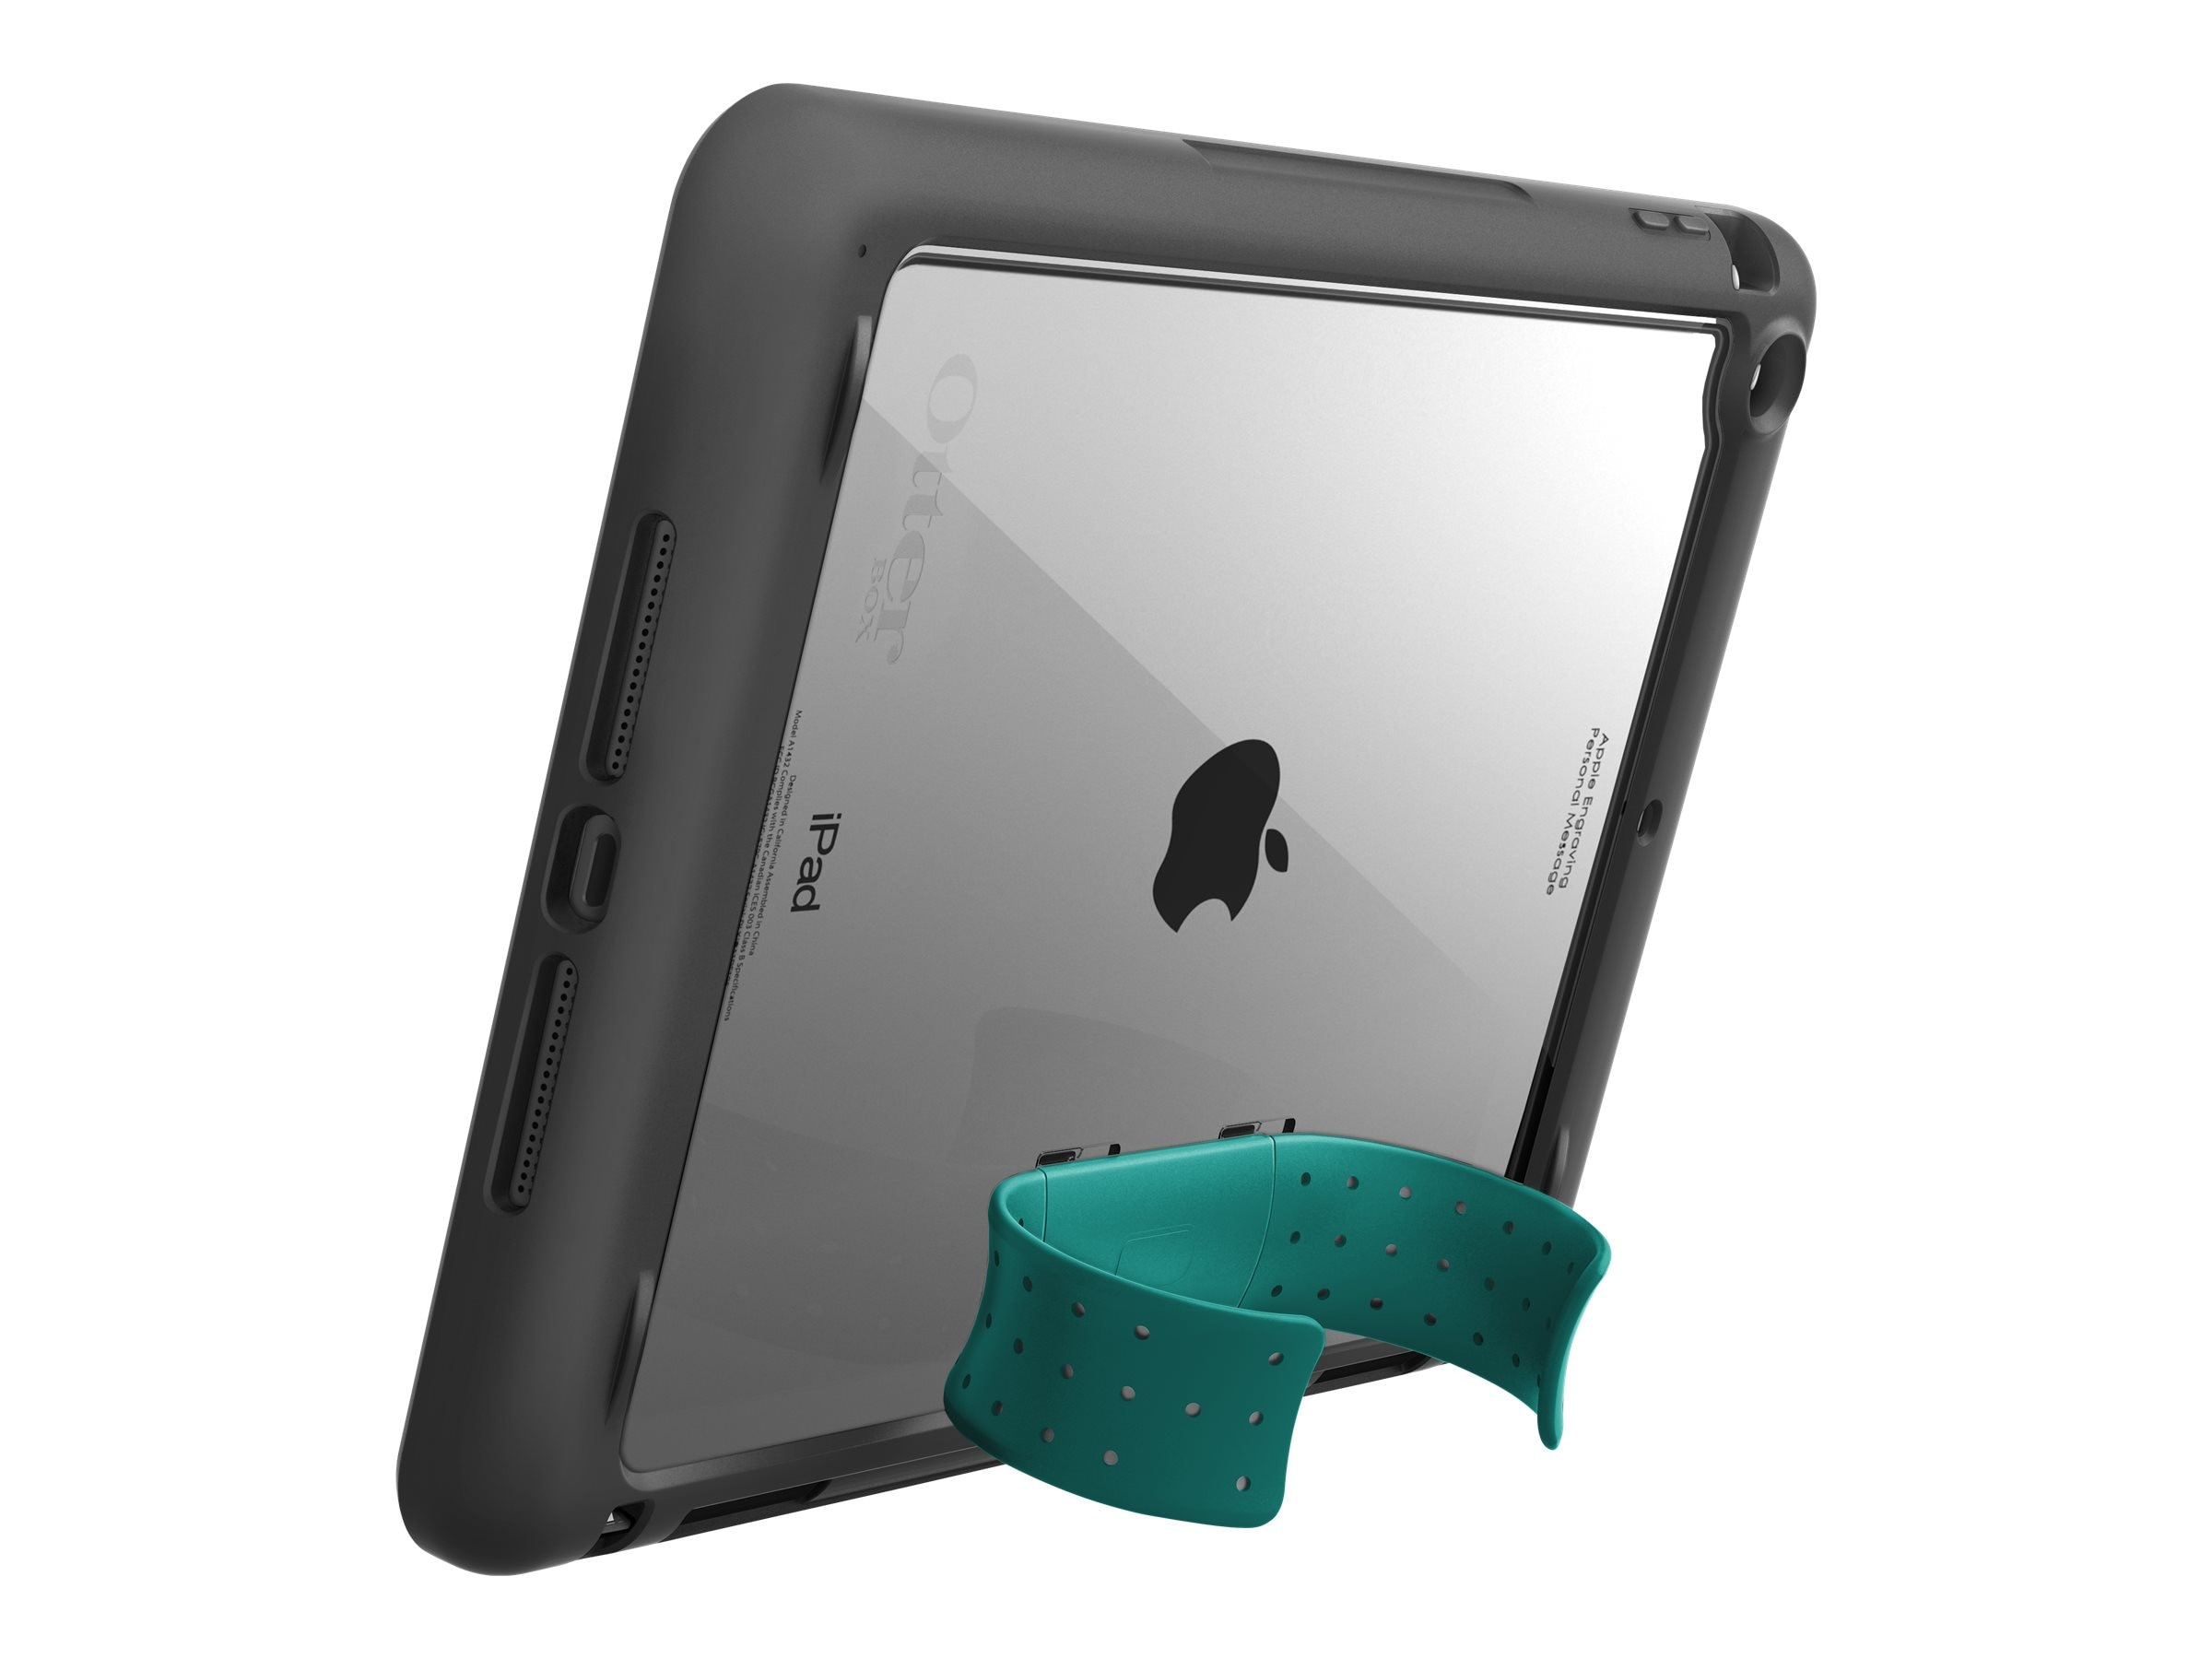 OtterBox Unlimited Stand for iPad Air, Light Teal, 78-41678, 18661149, Carrying Cases - Tablets & eReaders